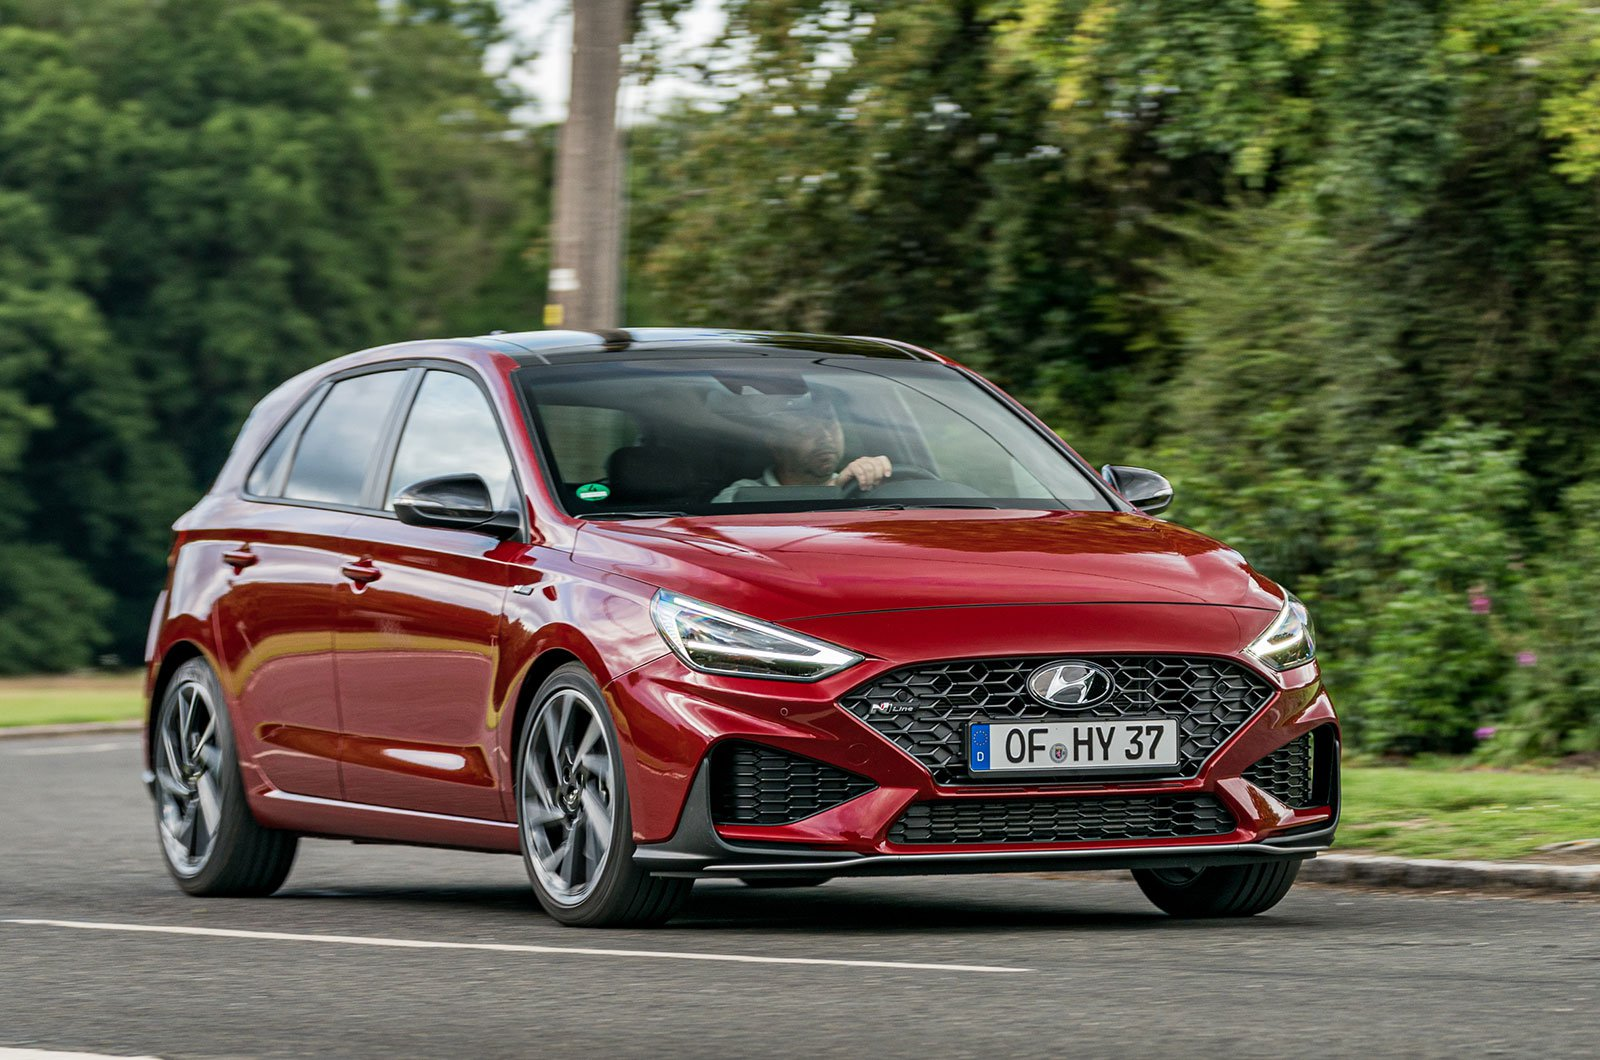 2021 hyundai i30 facelift review: price, specs and release